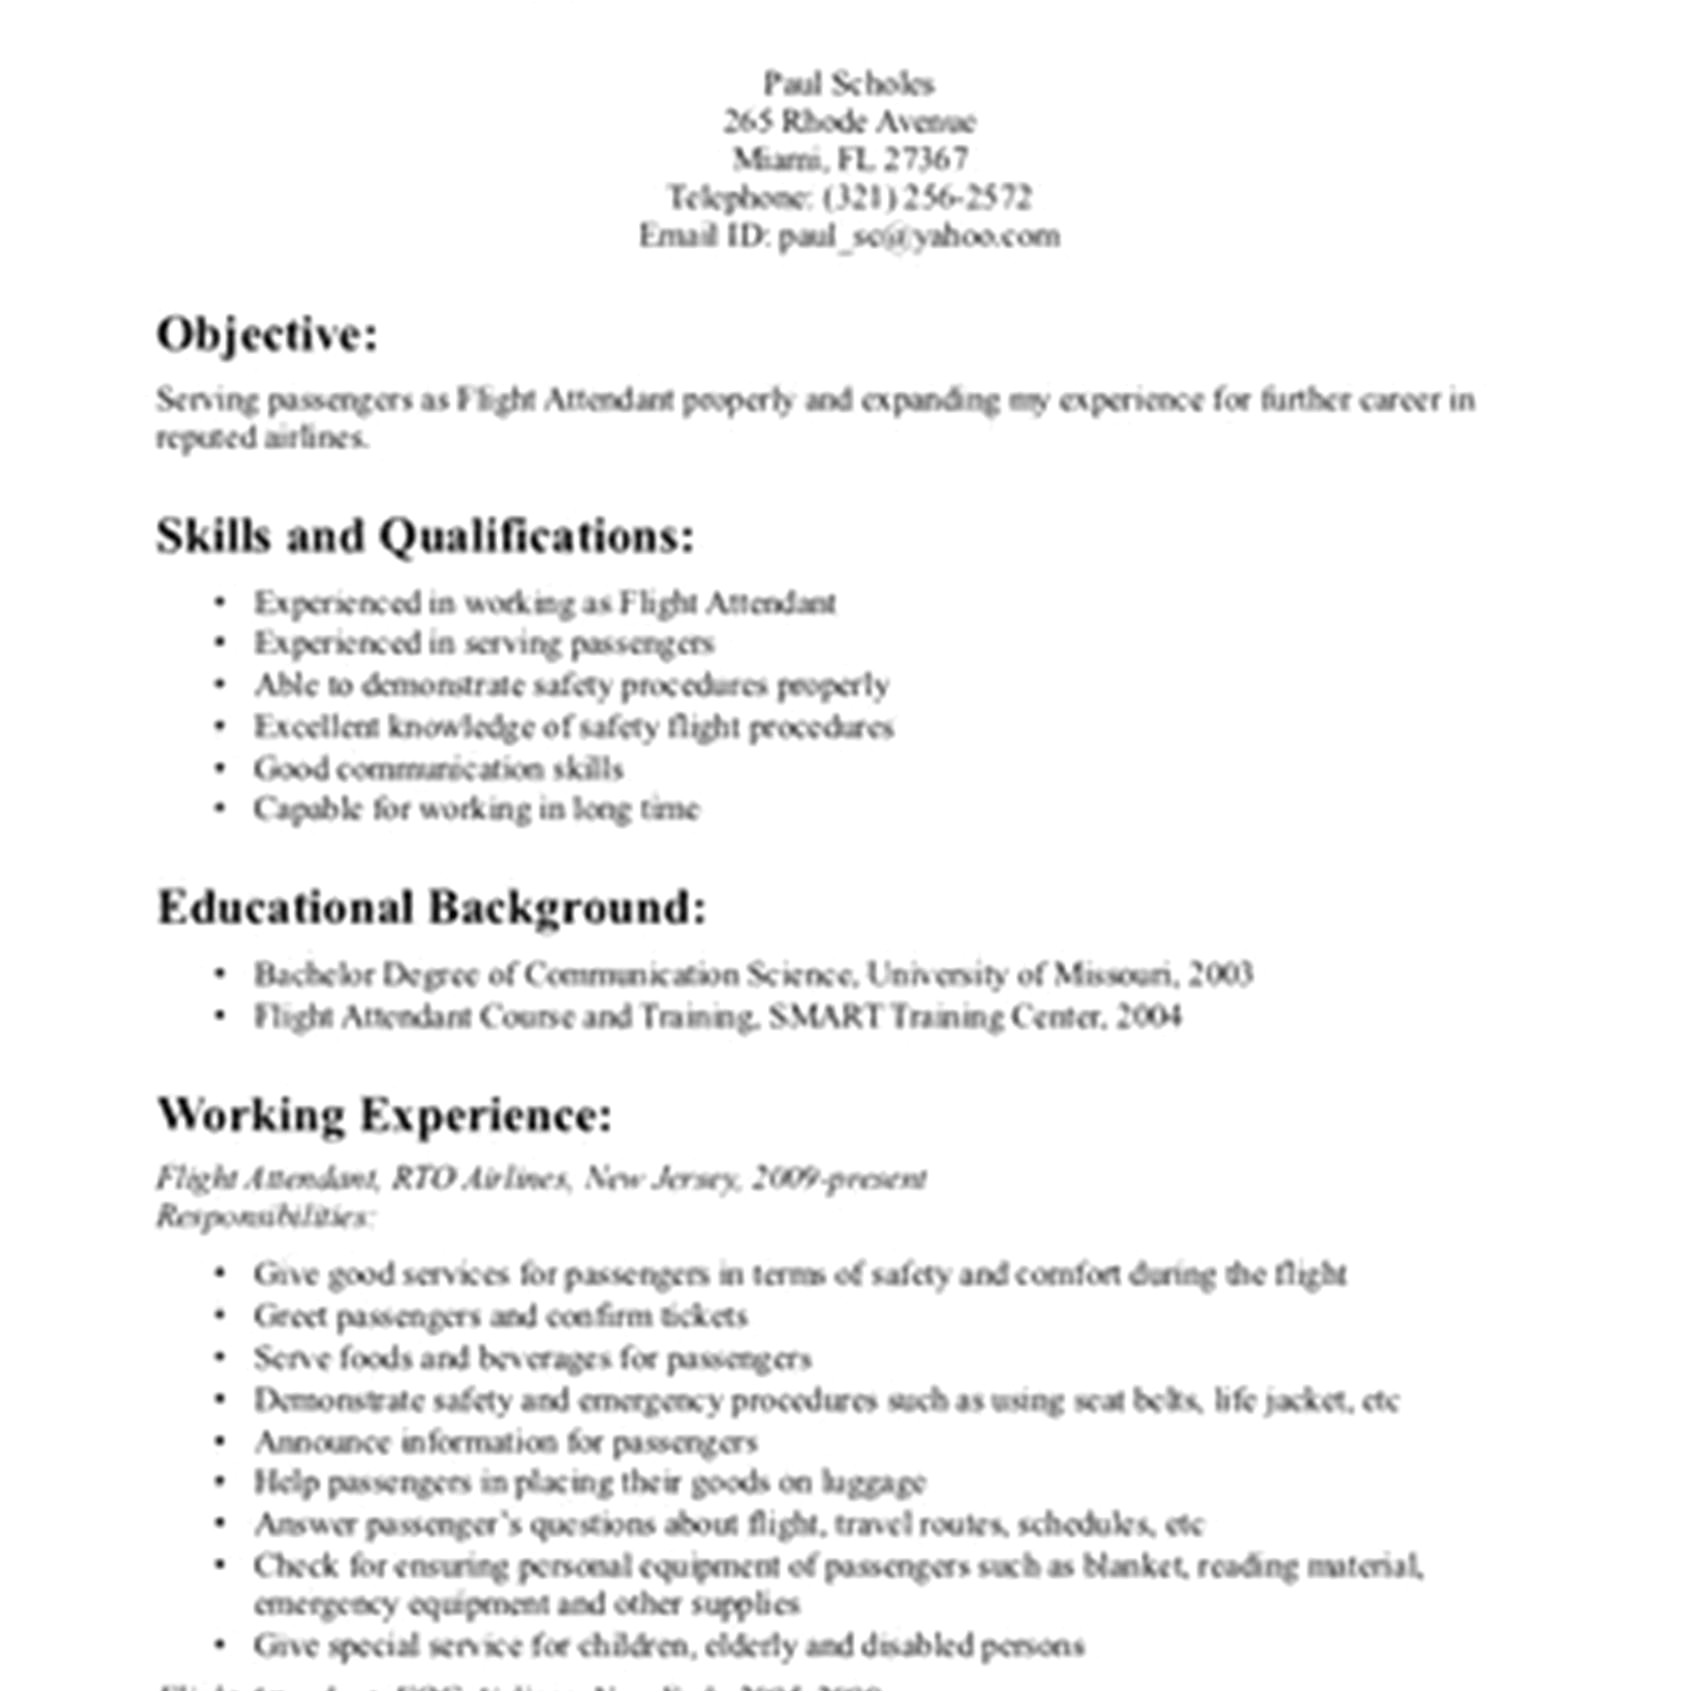 Fresher Cabin Crew Resume Sample Resume Templates format for Cabin Crew Freshers the Post